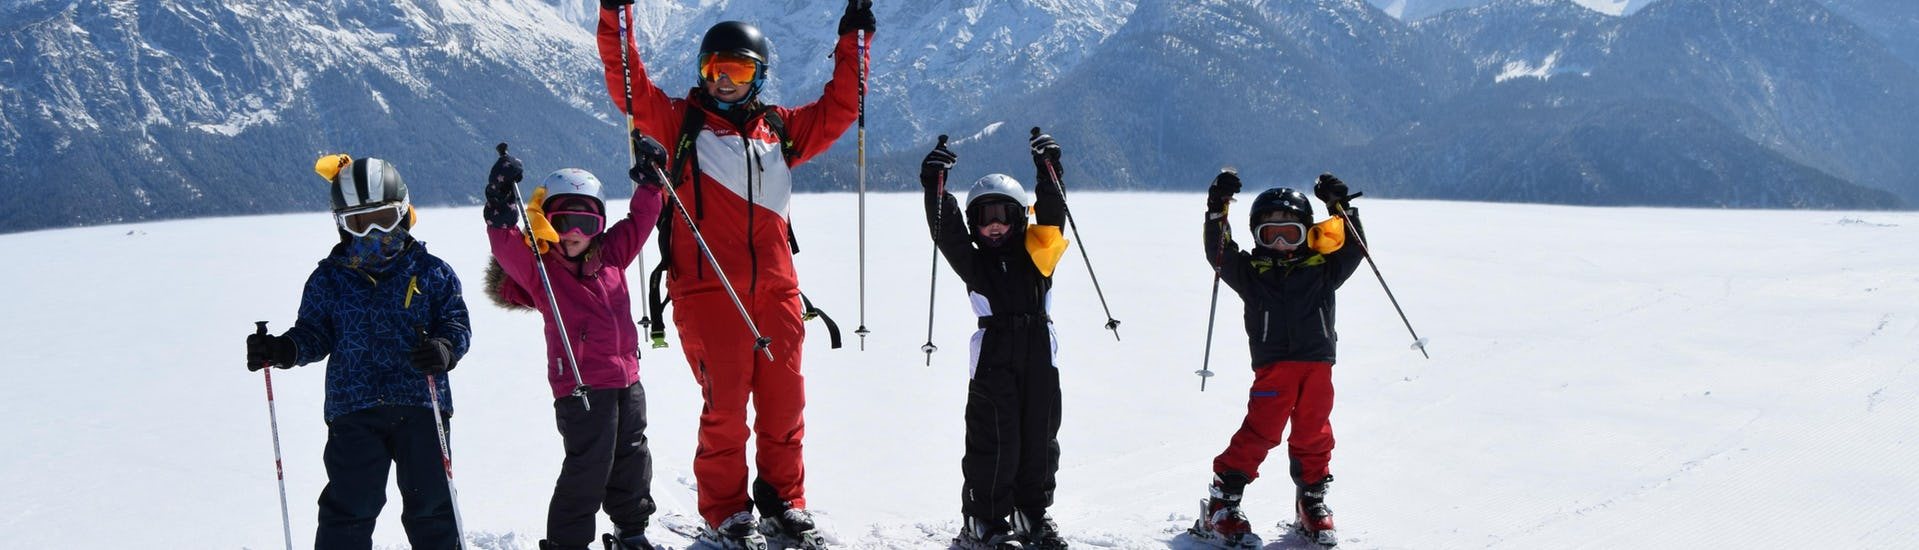 Ski Lessons for Kids (4-11 years) - Advanced